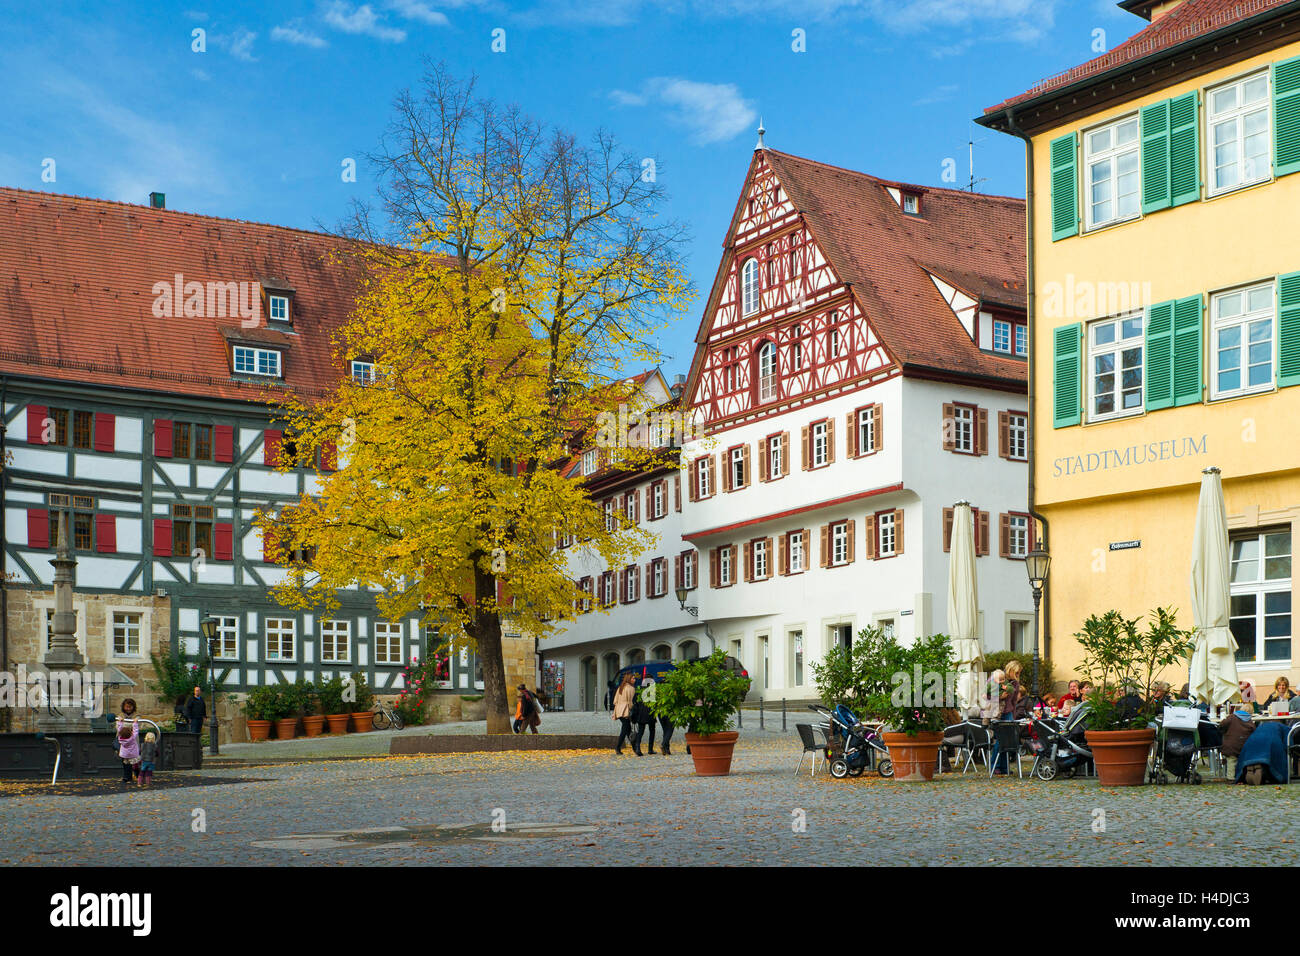 esslingen on neckar stockfotos esslingen on neckar bilder alamy. Black Bedroom Furniture Sets. Home Design Ideas